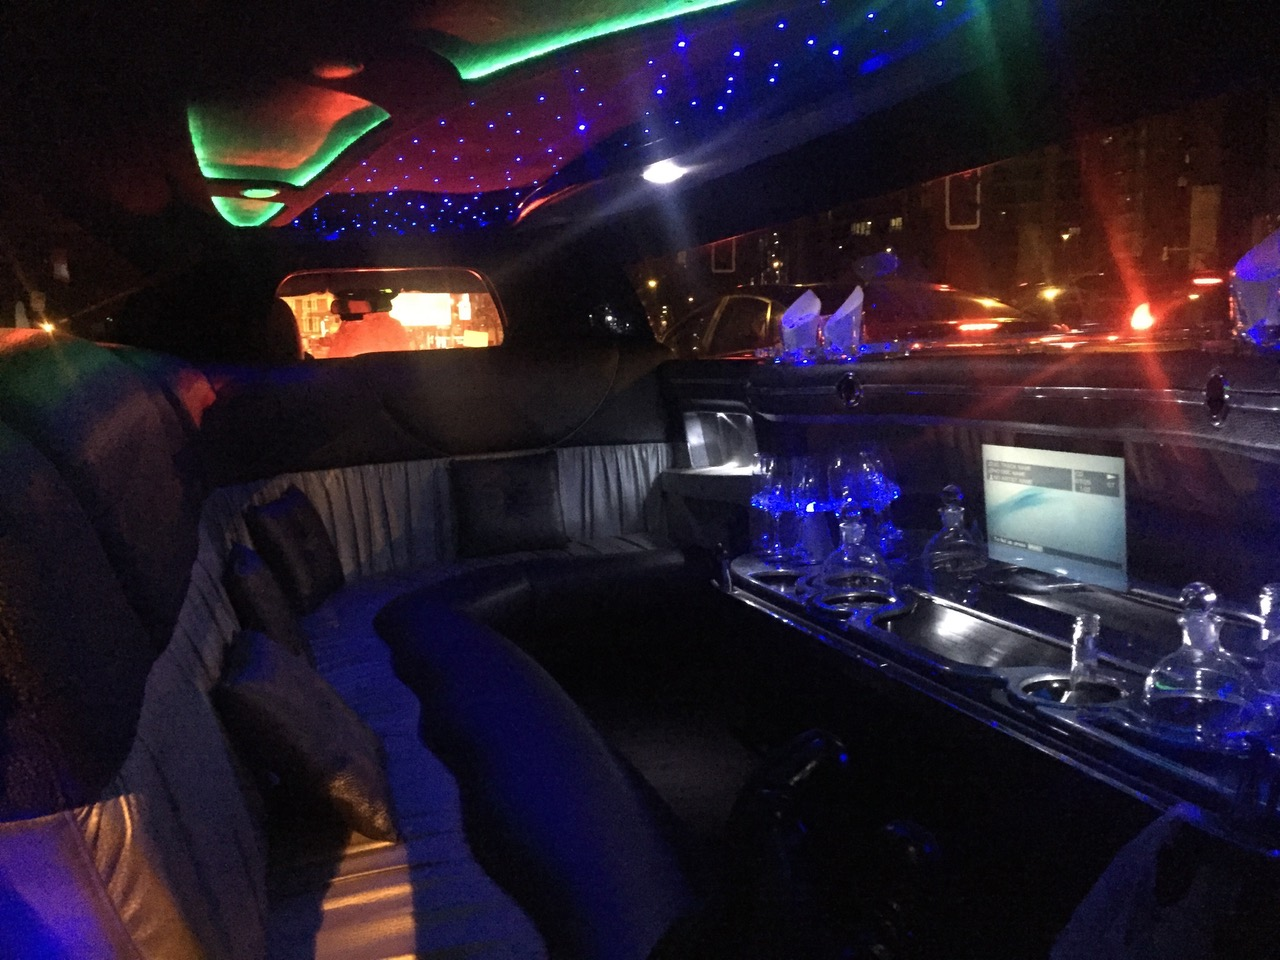 chrysler-limo-interior2